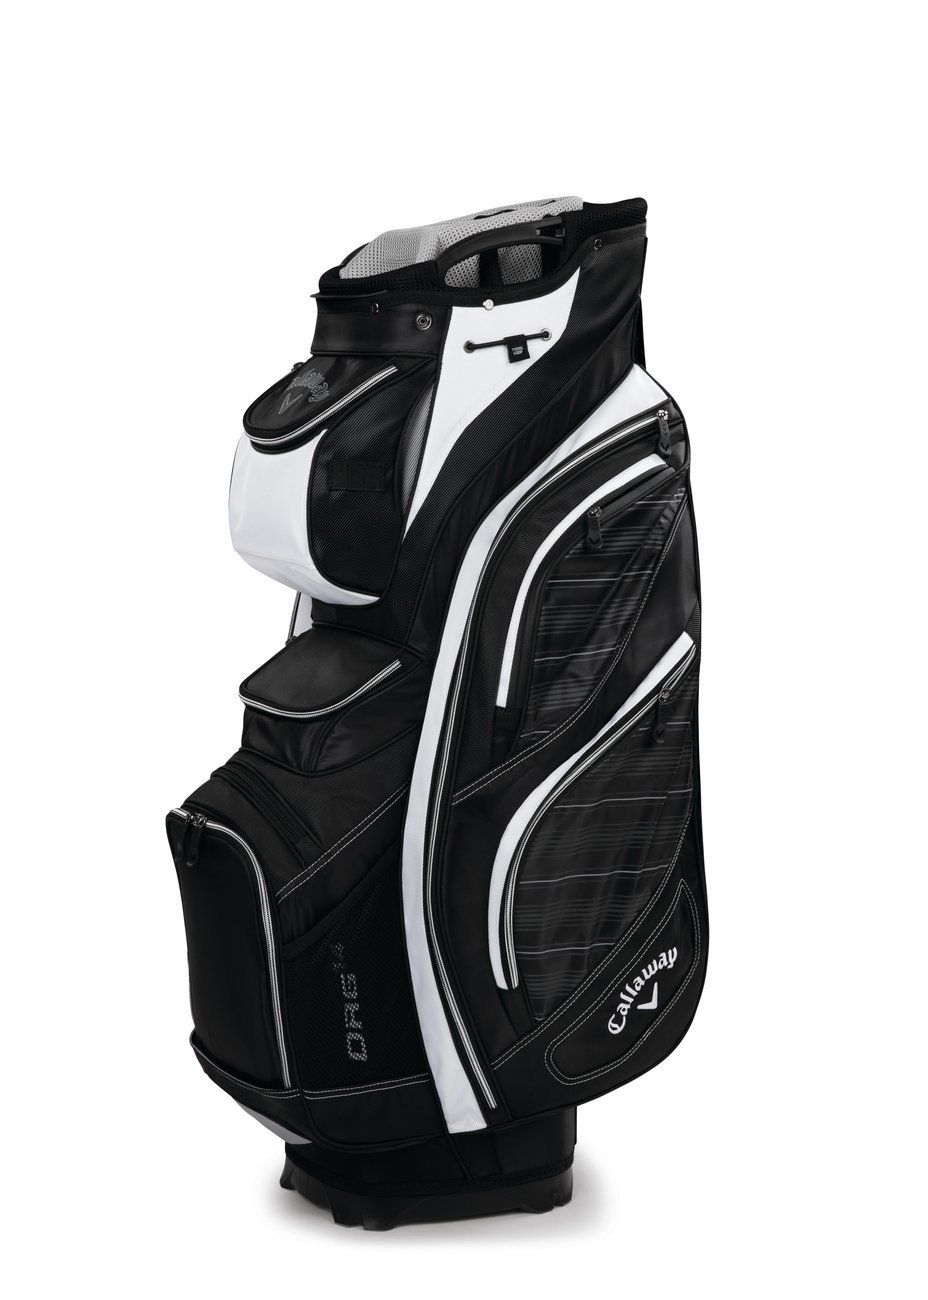 Callaway 2016 Org 14 Golf Cart Bag with 14 Full Length Club Dividers, 12 Pockets, 1 Water Resistant Pocket